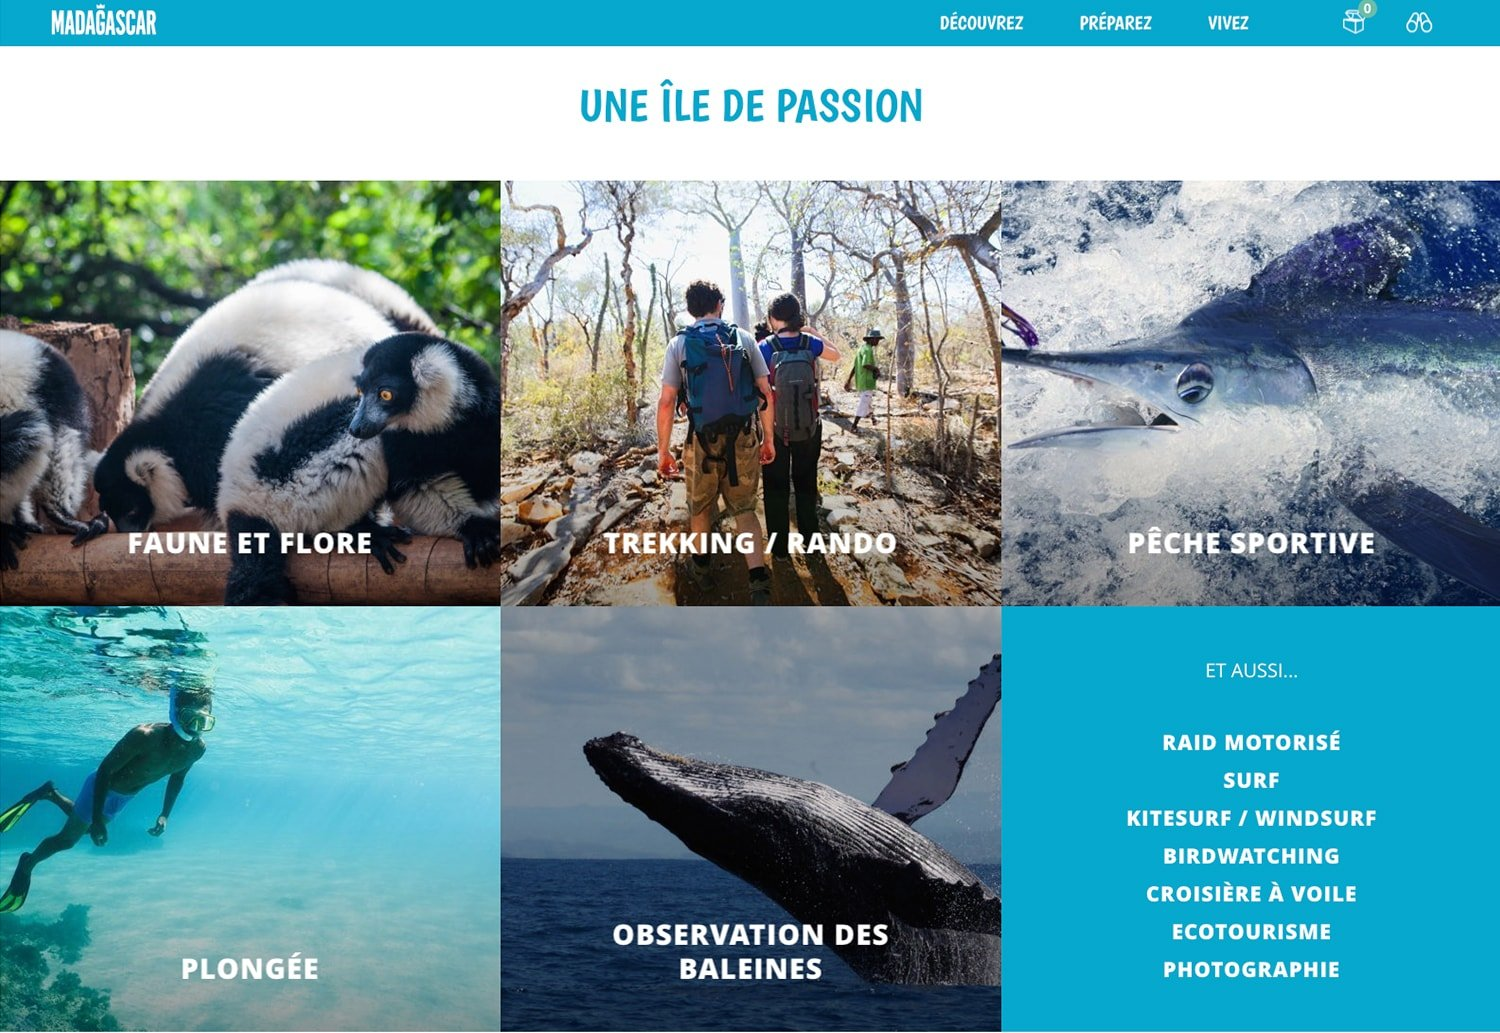 ARTICLE-The Vanilla Islands signs up to the global code of ethics in tourism